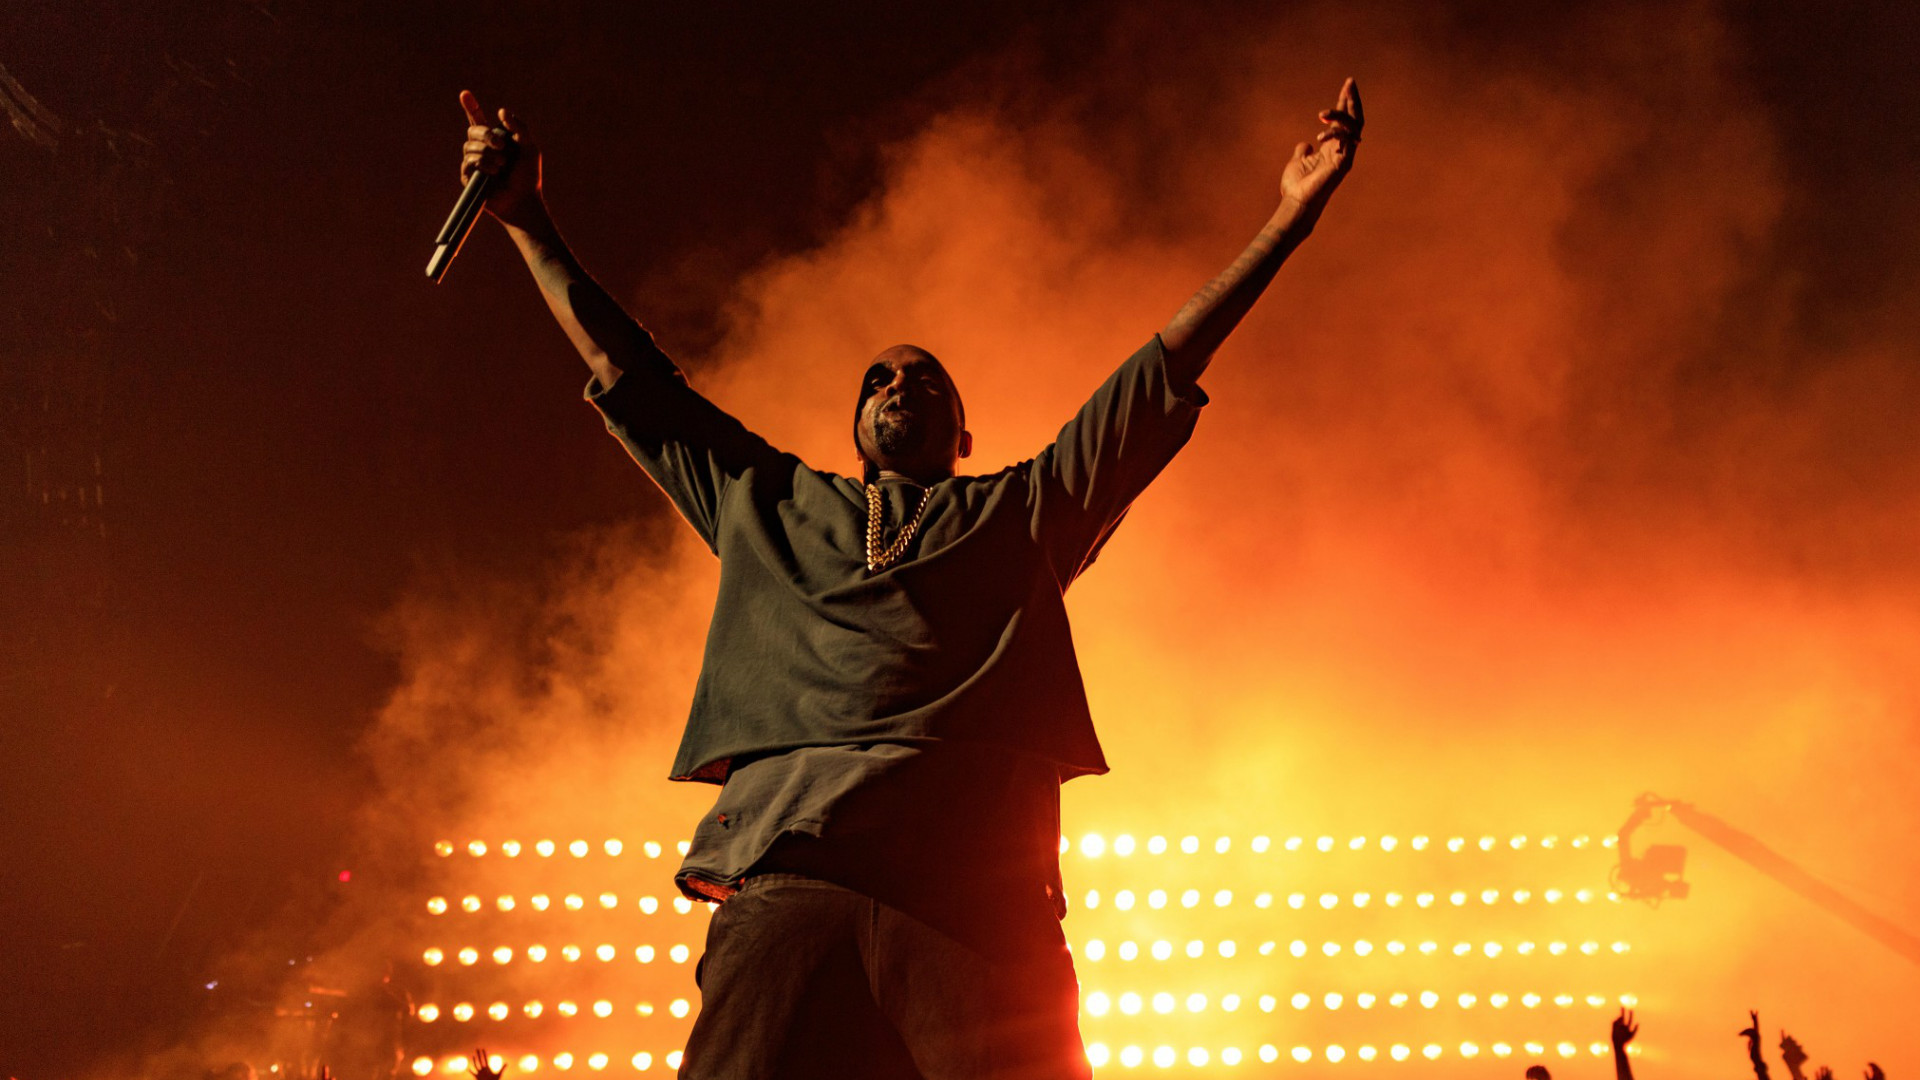 Kanye West performing on stage.